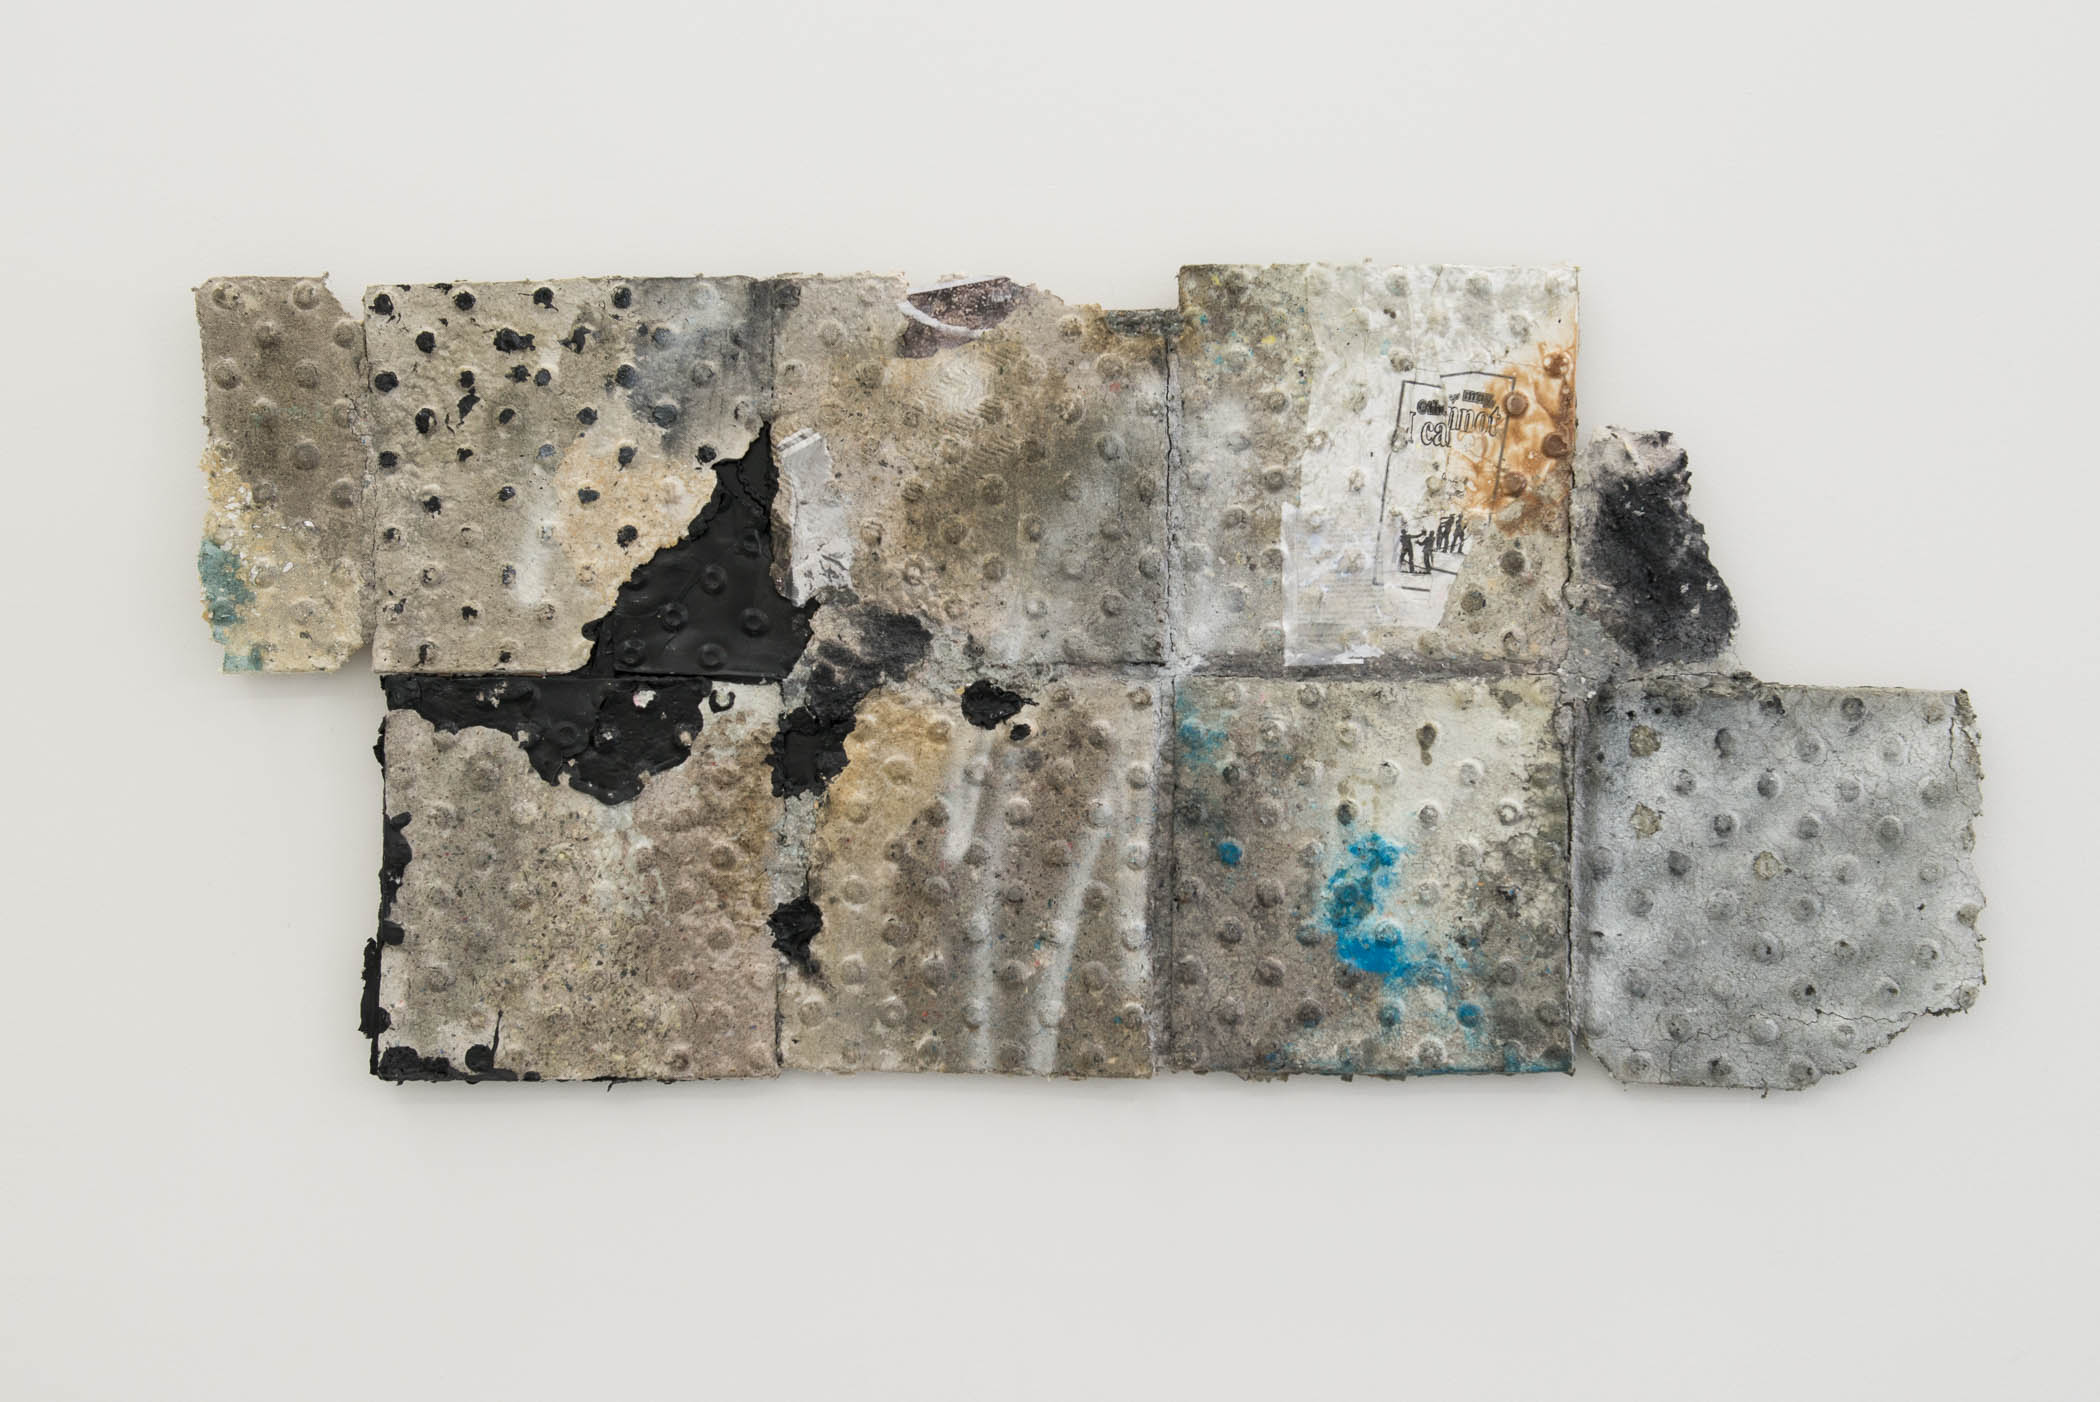 Brandon Ndife untitled (others may i cannot), 2015 Paper pulp relief, resin, rubber, and acrylic mounted on board